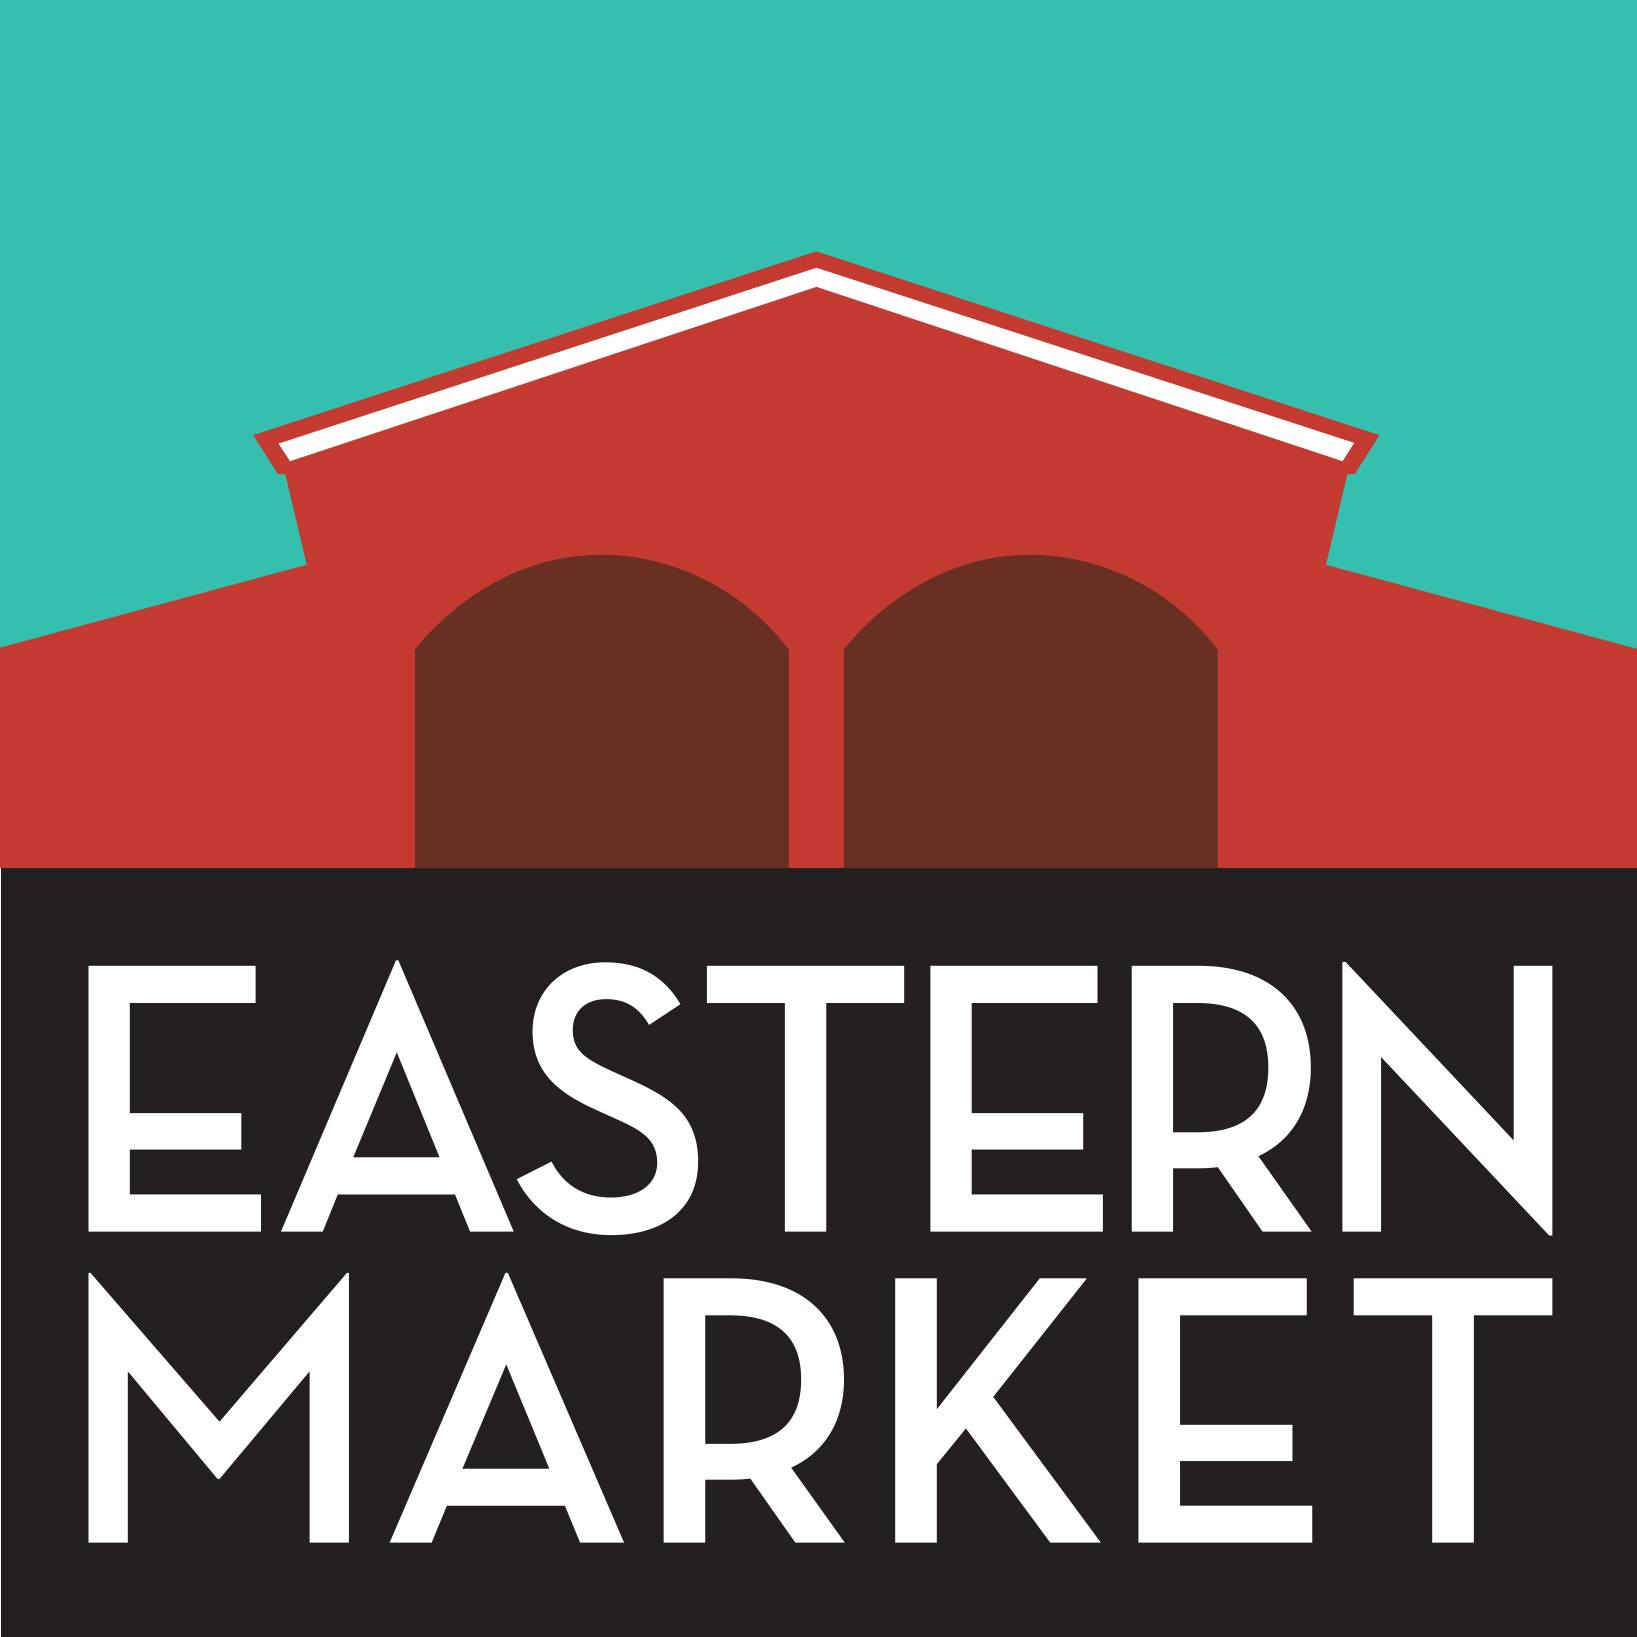 - Detroit's Historic Eastern Market is not only a destination for chefs and residents to do their weekly shopping, it's also mission driven nonprofit that serves Detroit's food growers and producers. Eastern Market Growing Communities has supported The Mushroom Factory with multiple equipment grants that helped us increase our farm's production.